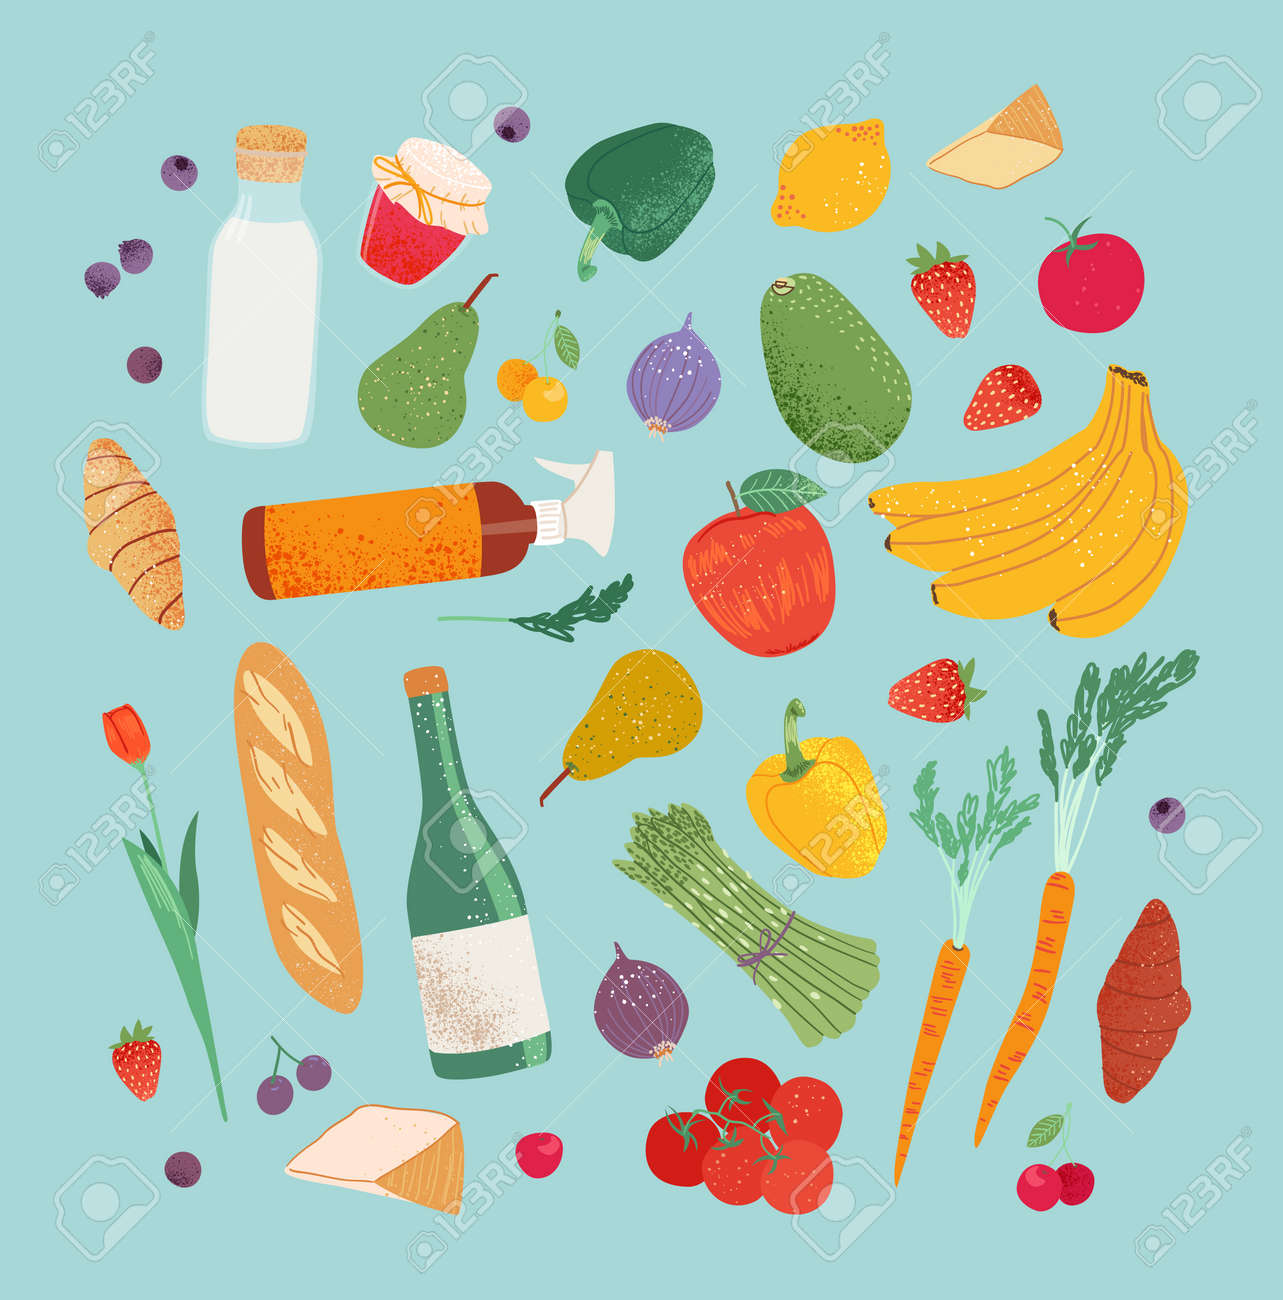 Grocery purchases set, fruits and vegetable from the local store, market, farm. Department store goods illustration for banner, pattern. - 170385443